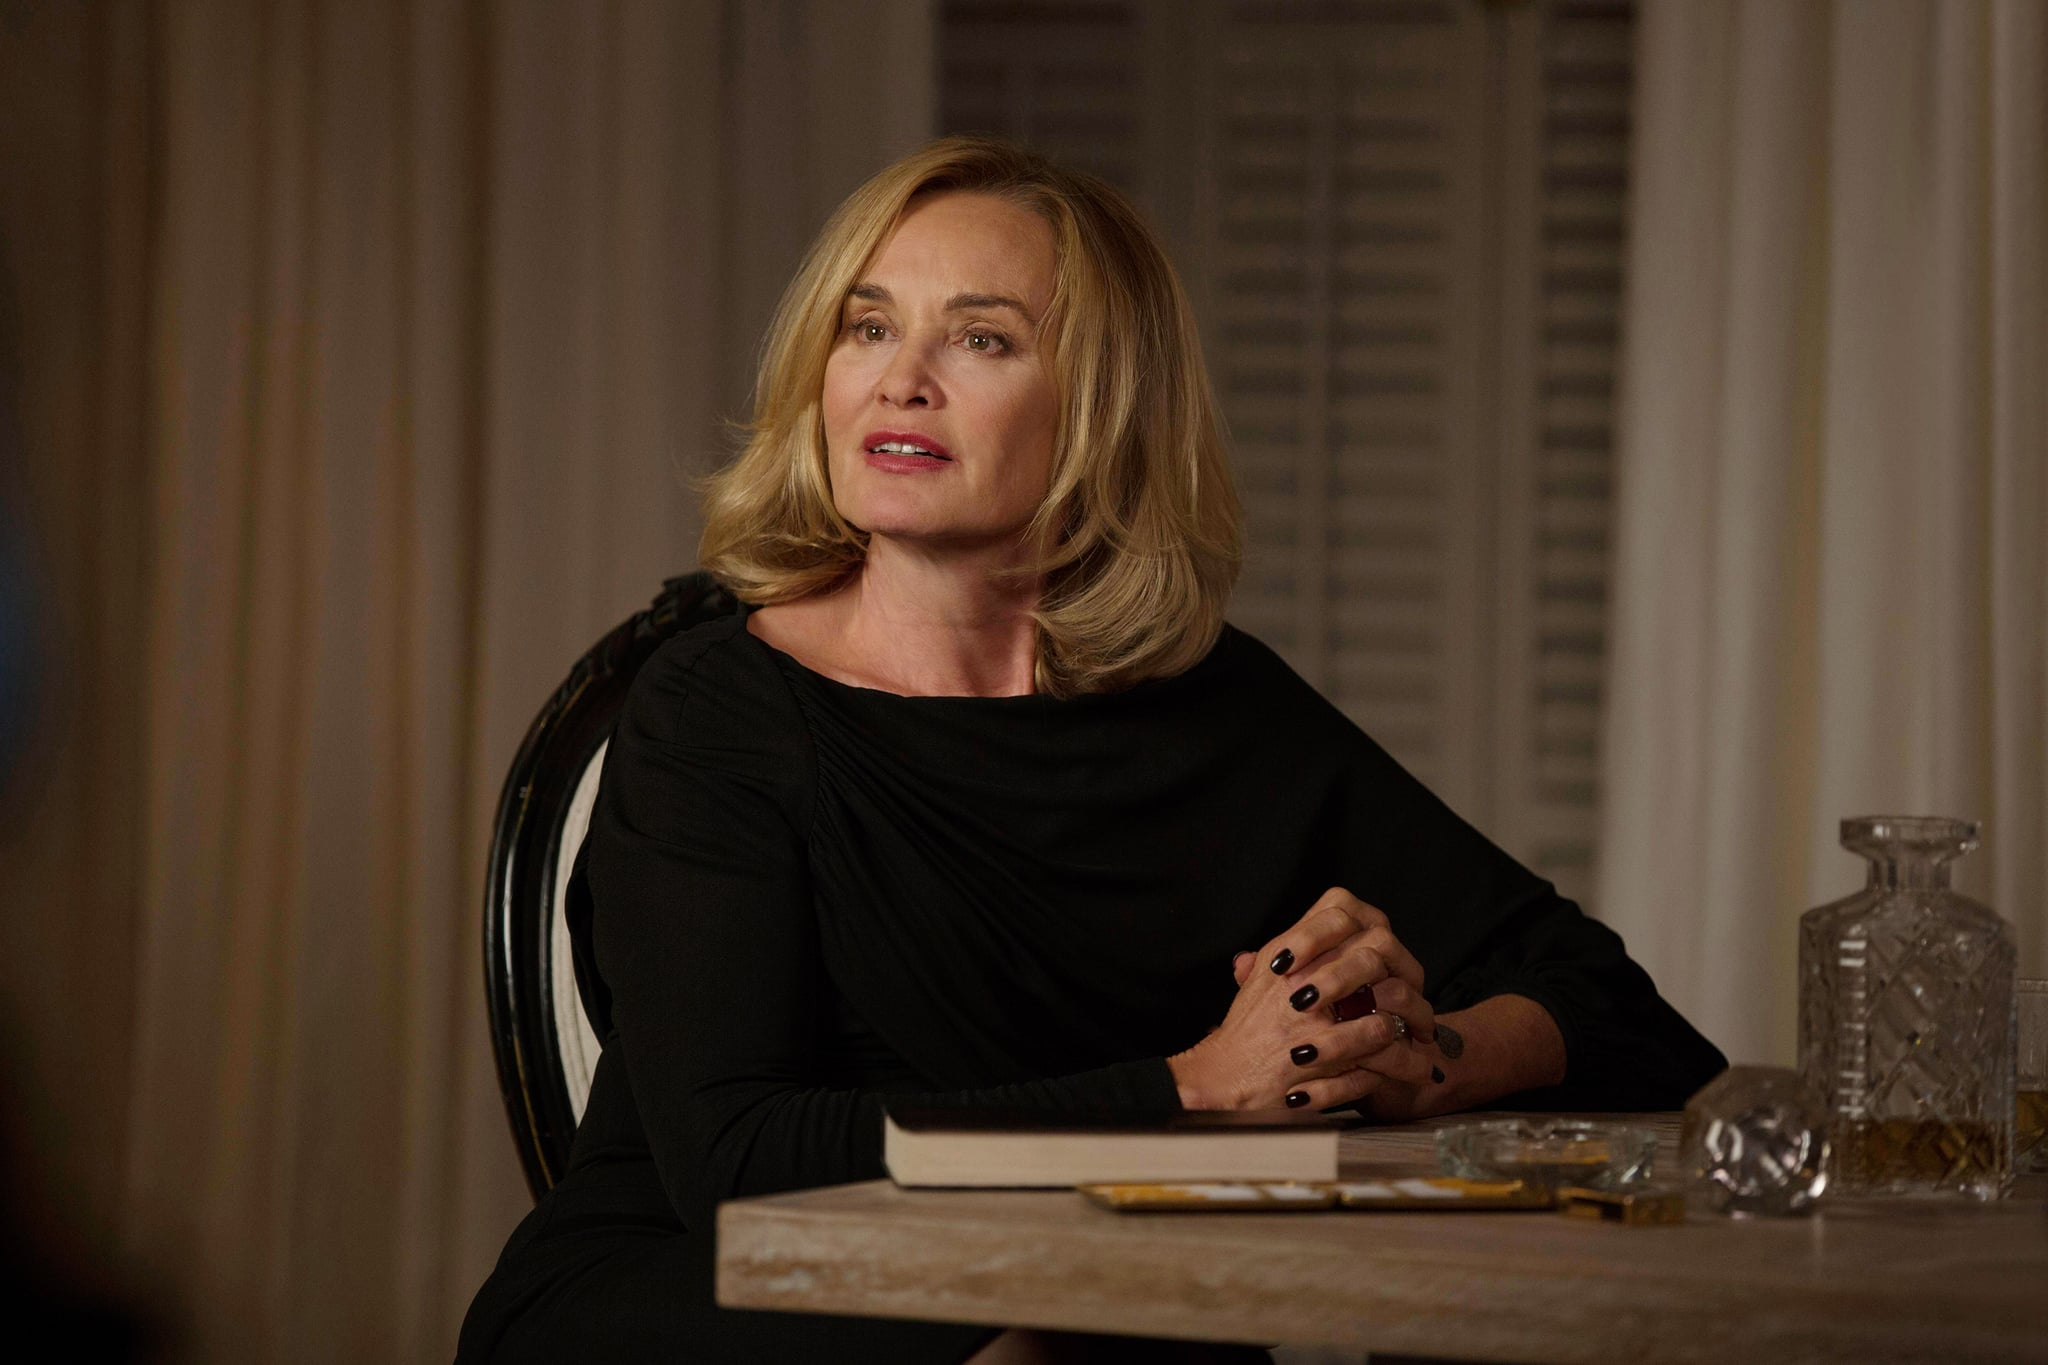 AMERICAN HORROR STORY: COVEN, Jessica Lange in 'The Replacements' (Season 3, Episode 3, aired October 23, 2013). ph: Michele K. Short/FX/courtesy Everett Collection